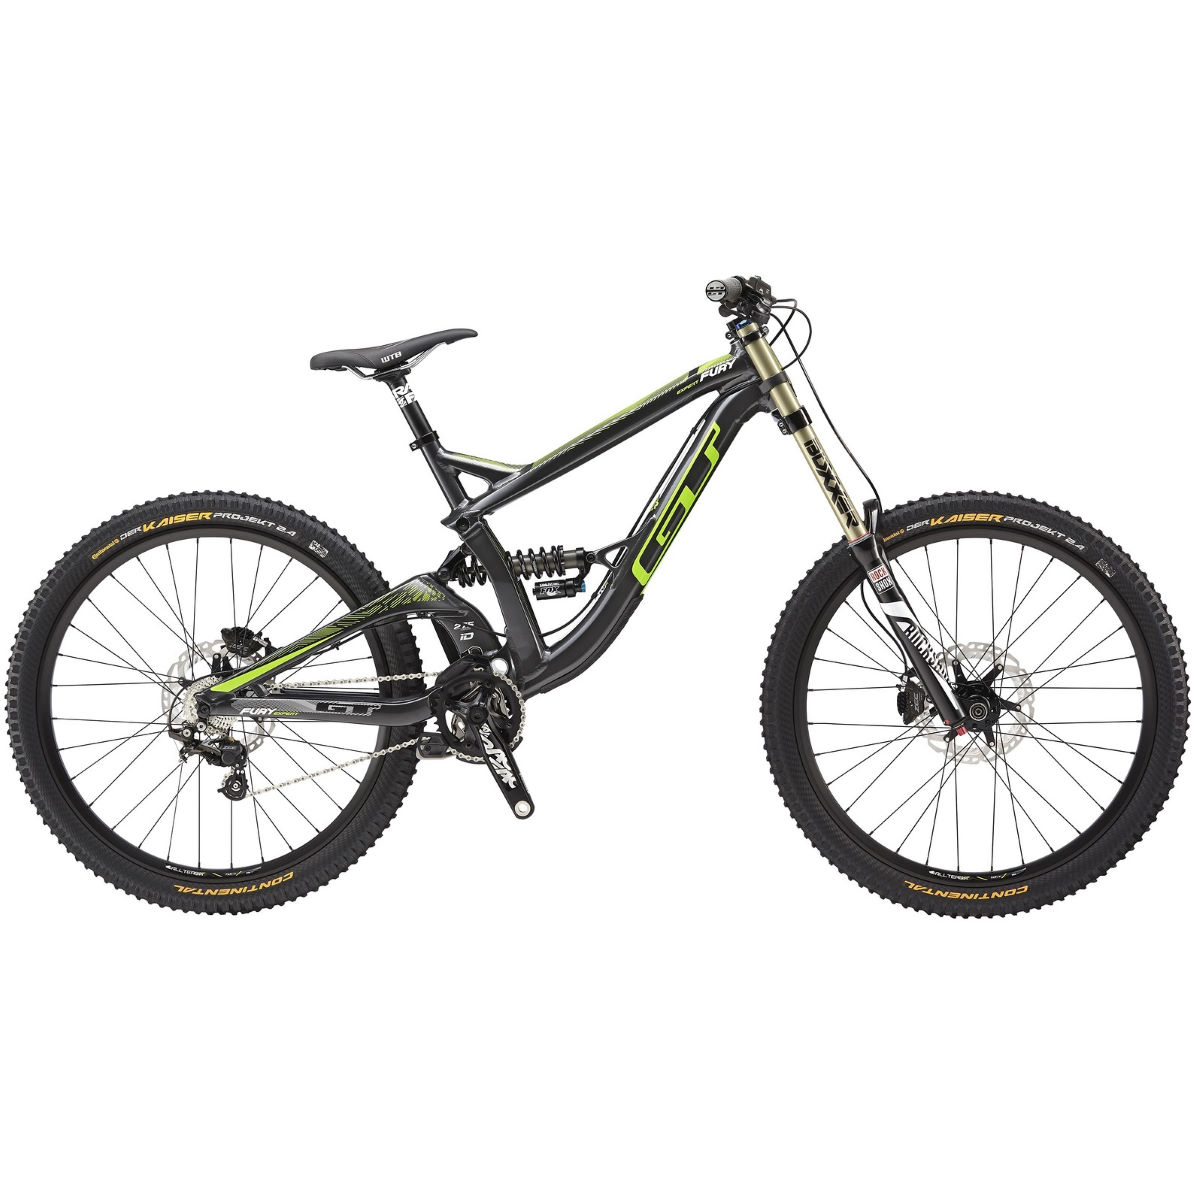 VTT GT Fury Expert (2015) - M Stock Bike Gun Gloss VTT tout suspendu